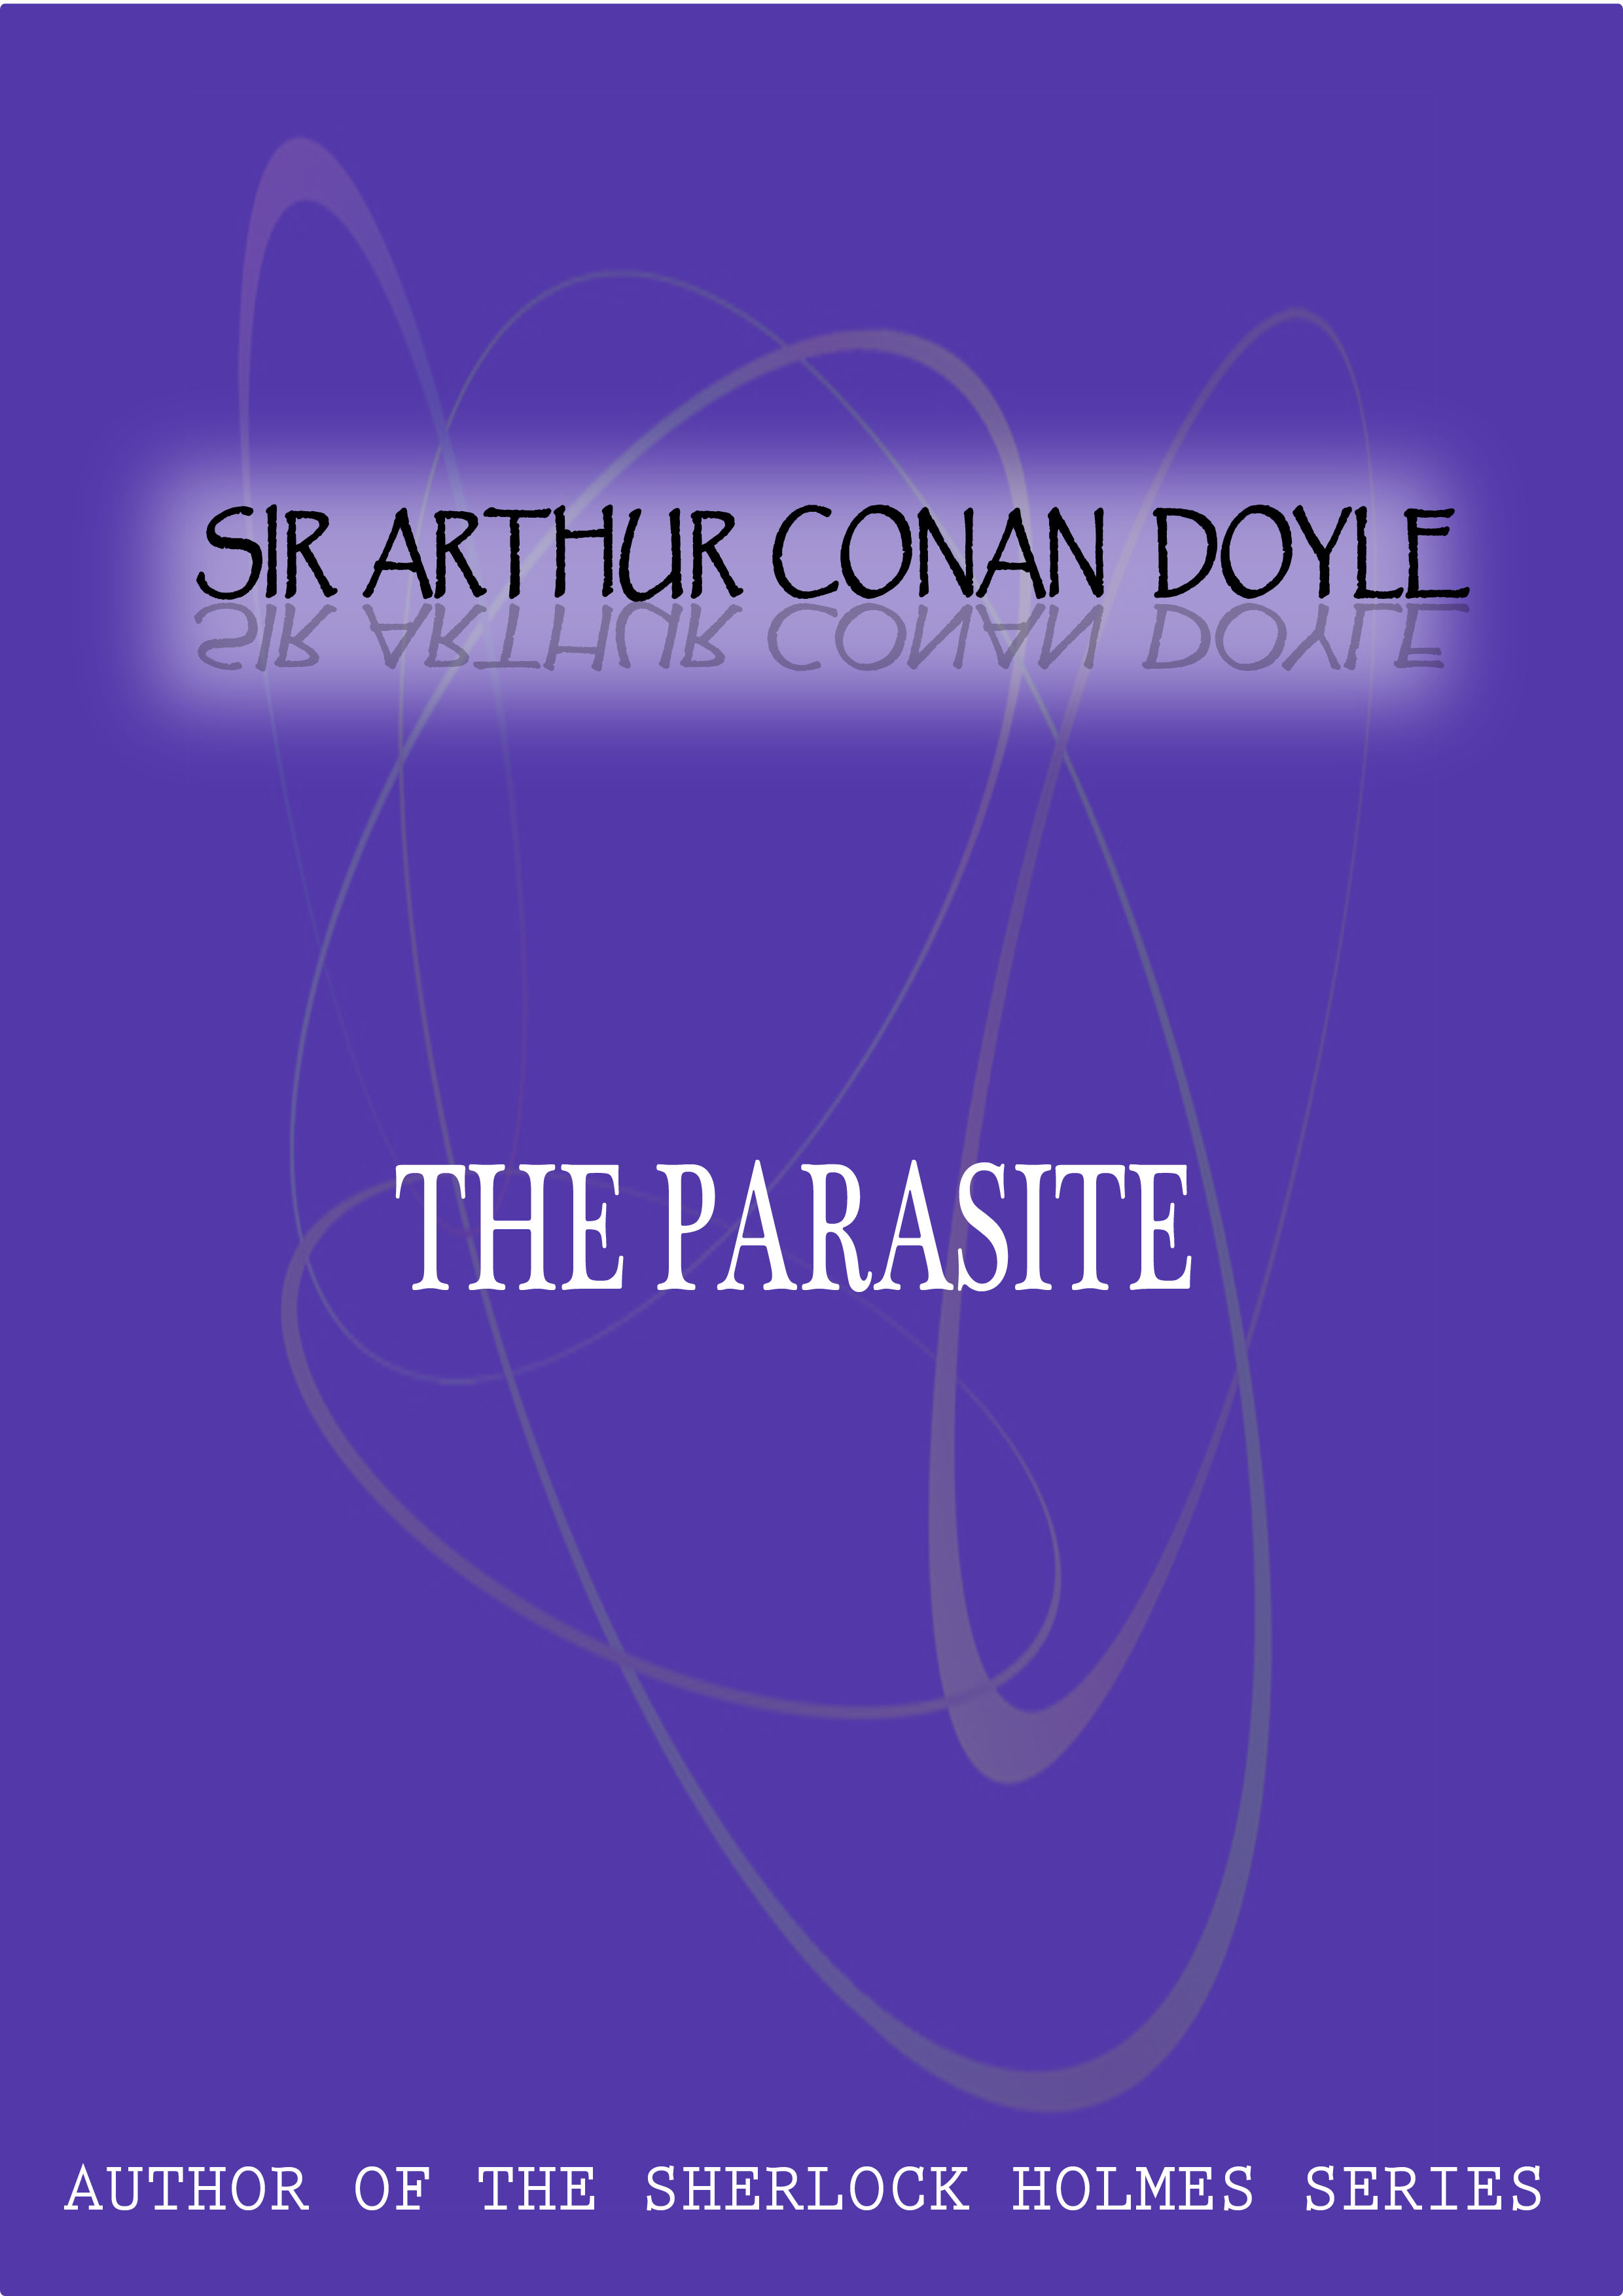 The Parasite A Story By: Sir Arthur Conan Doyle